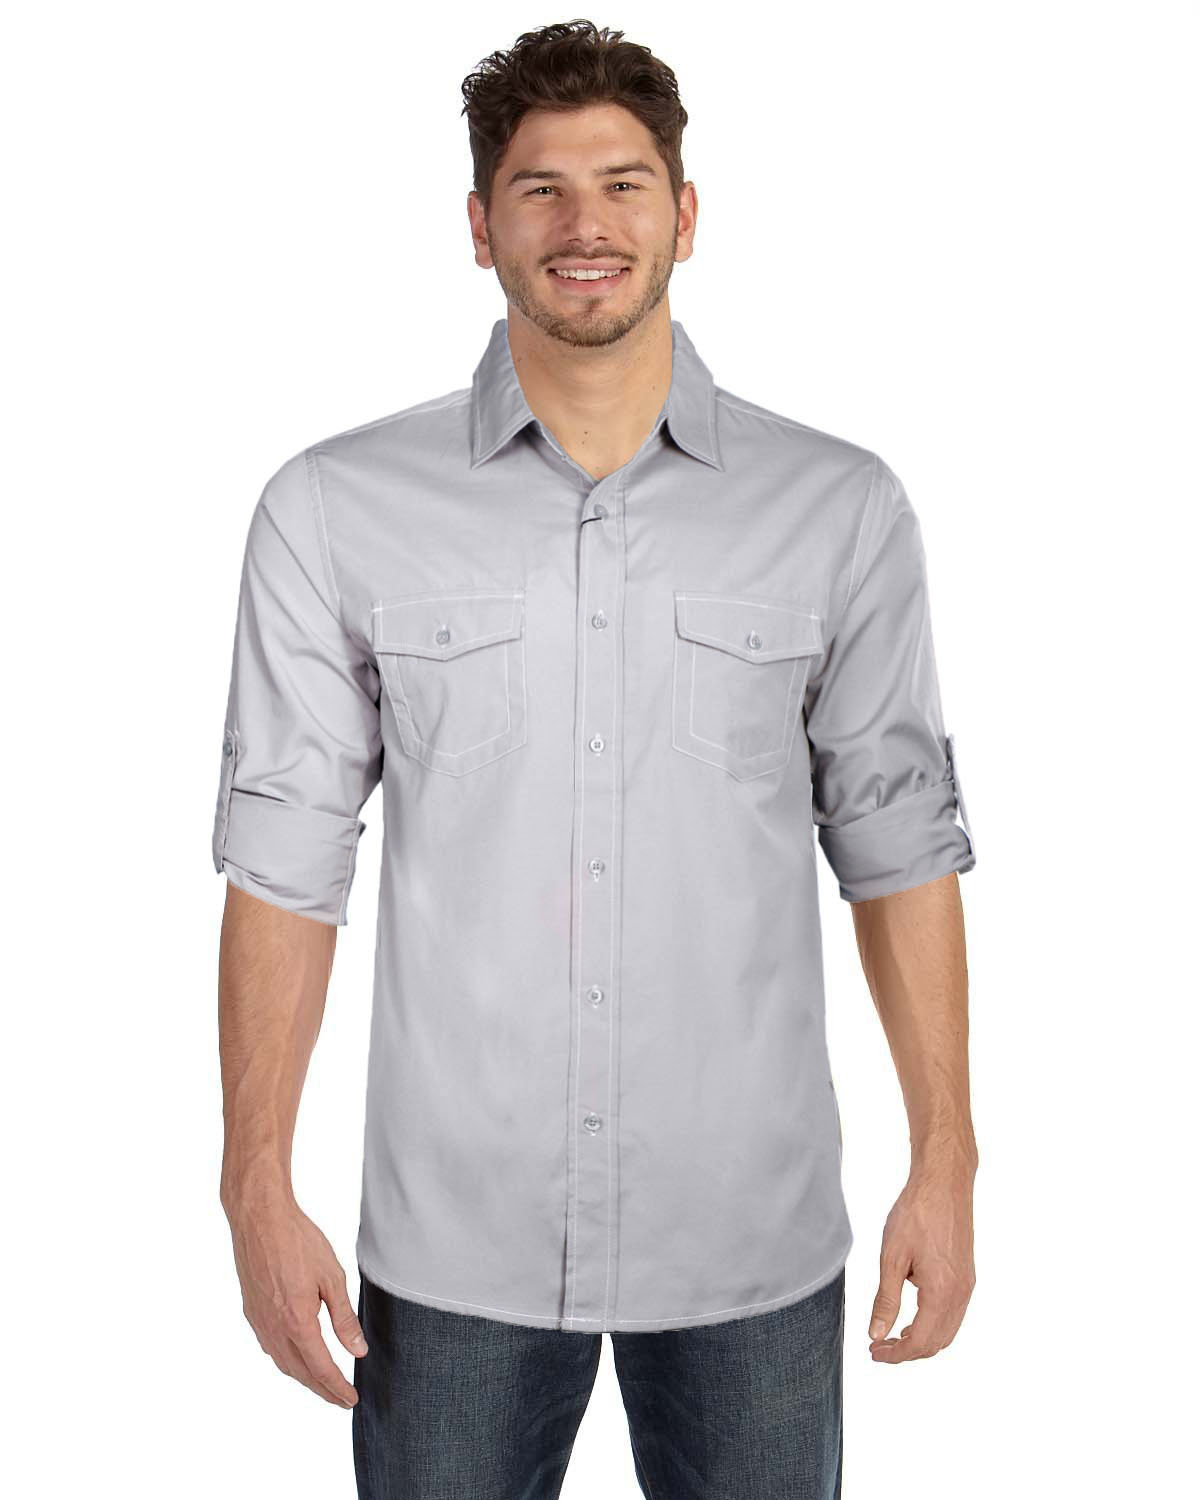 NoNo Maldonado Men's Casual Button Down Shirt | eBay